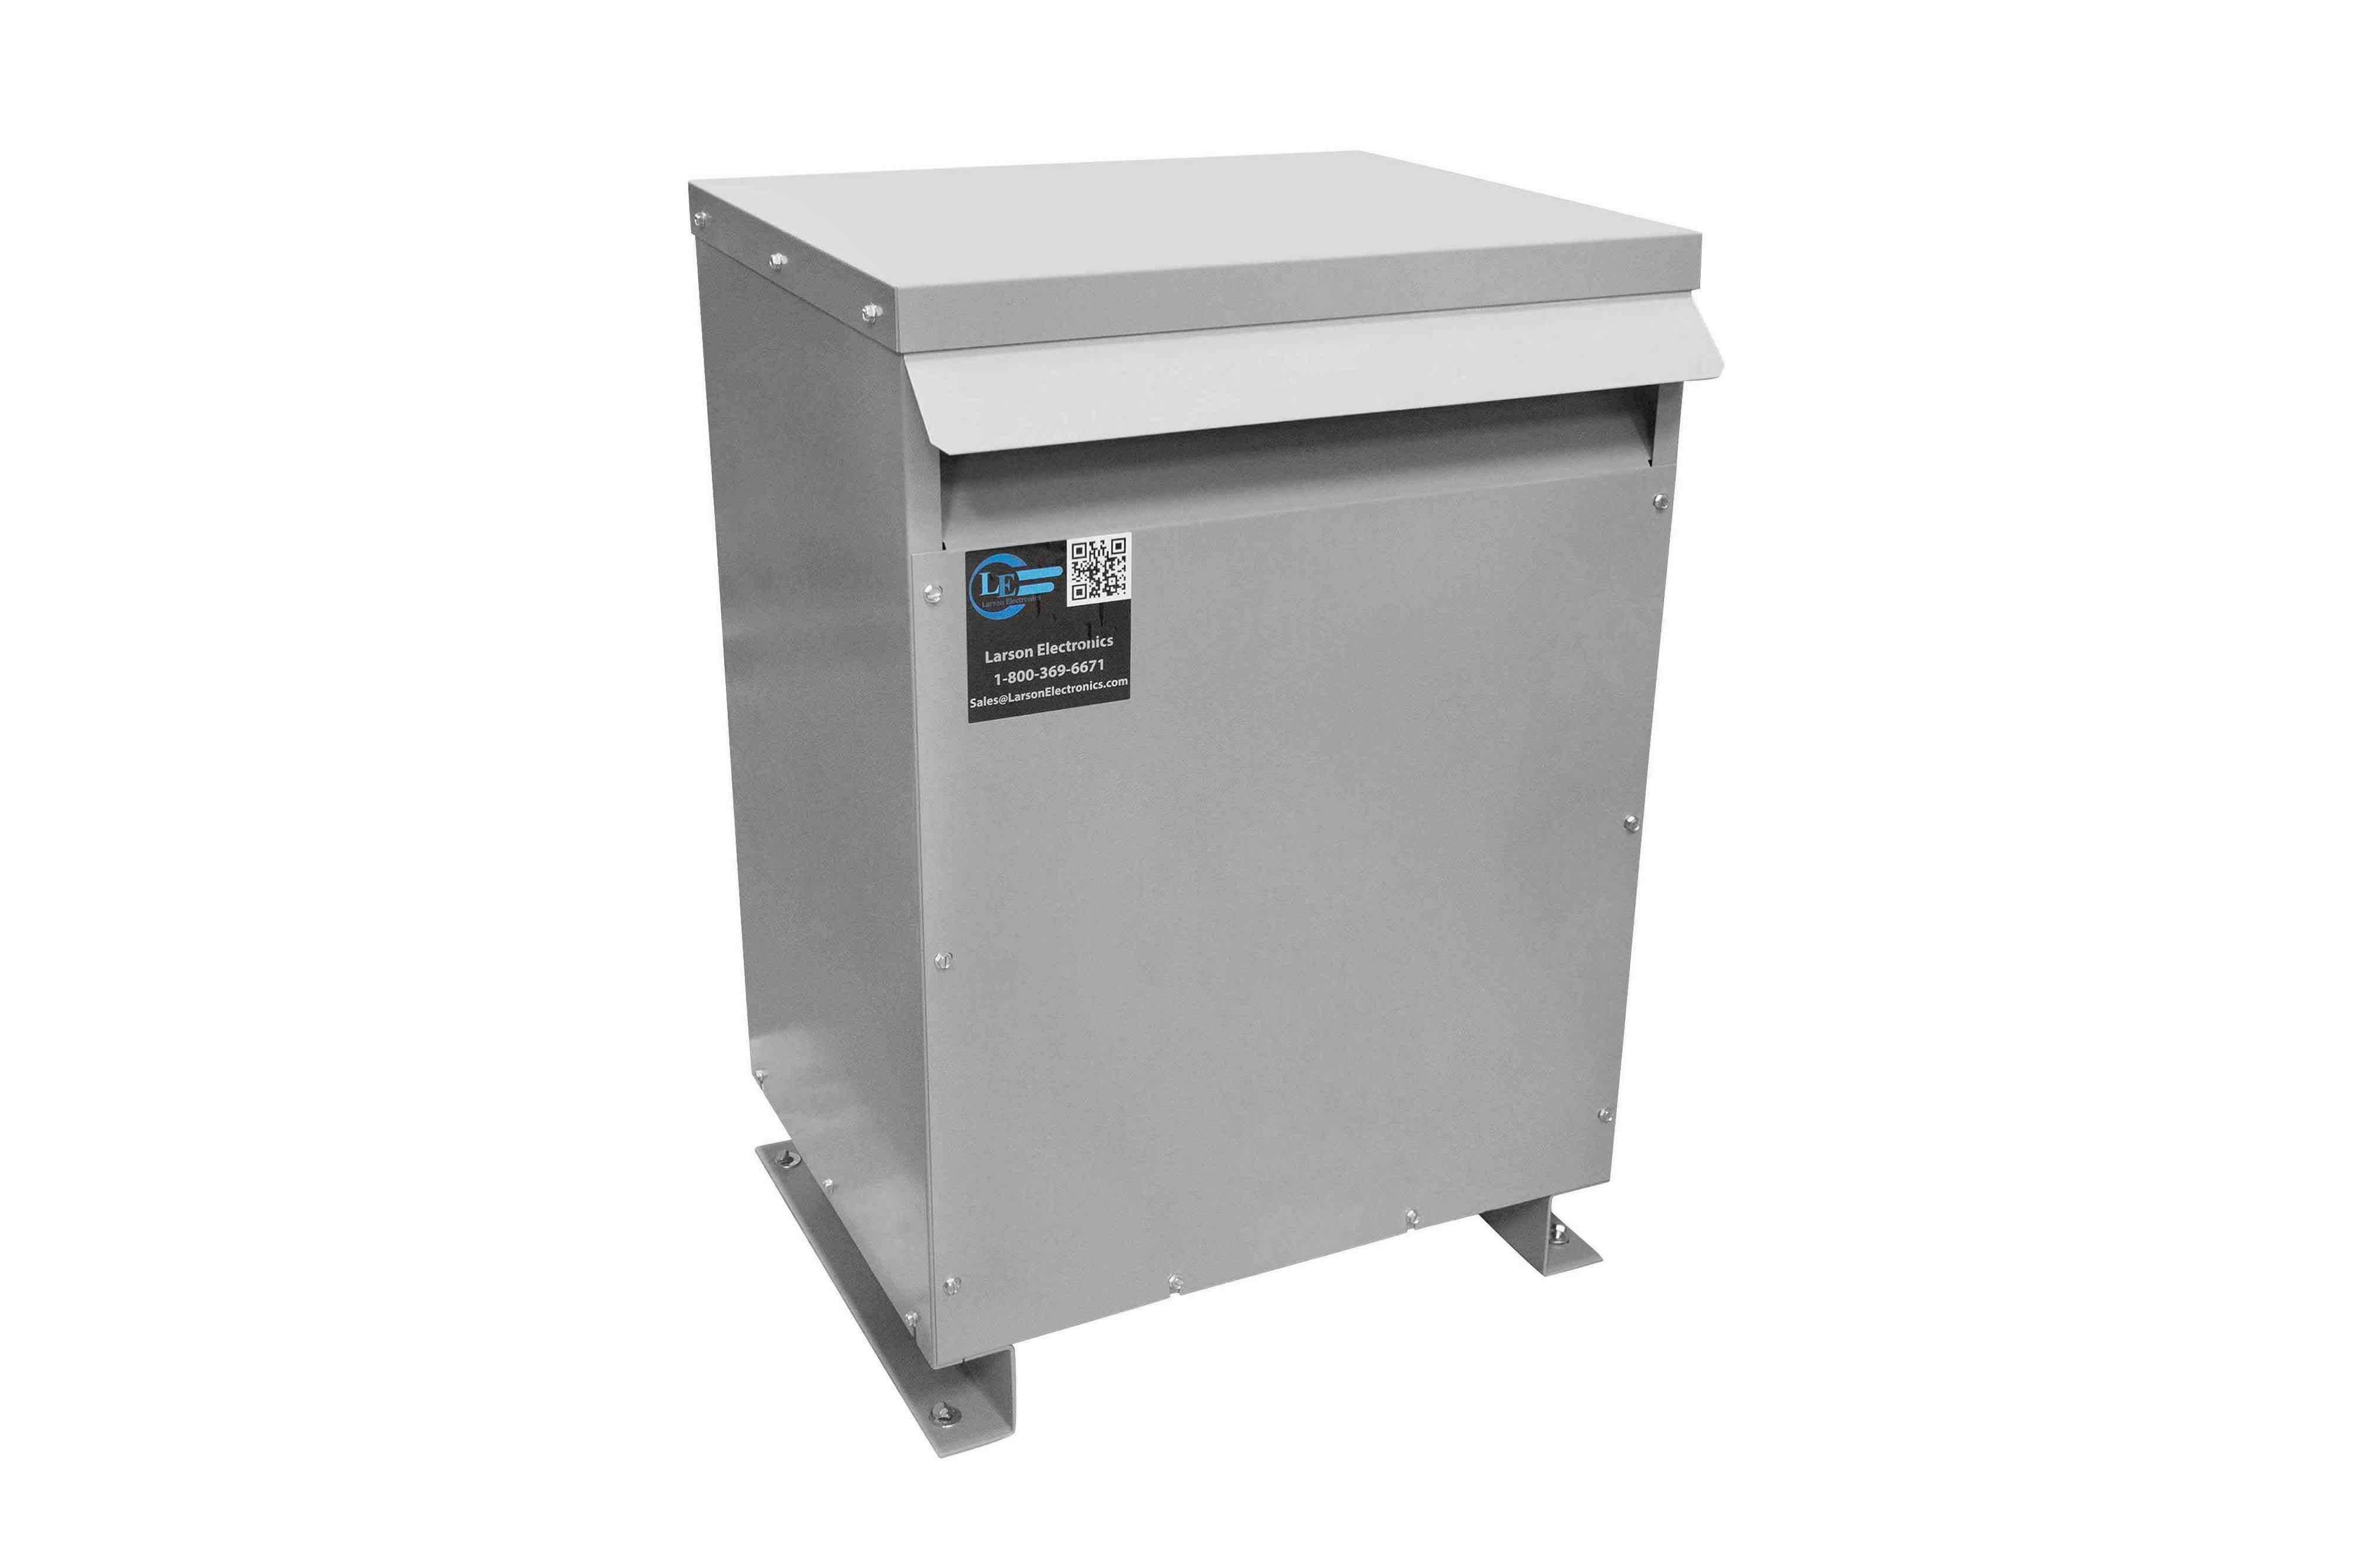 100 kVA 3PH DOE Transformer, 208V Delta Primary, 415Y/240 Wye-N Secondary, N3R, Ventilated, 60 Hz